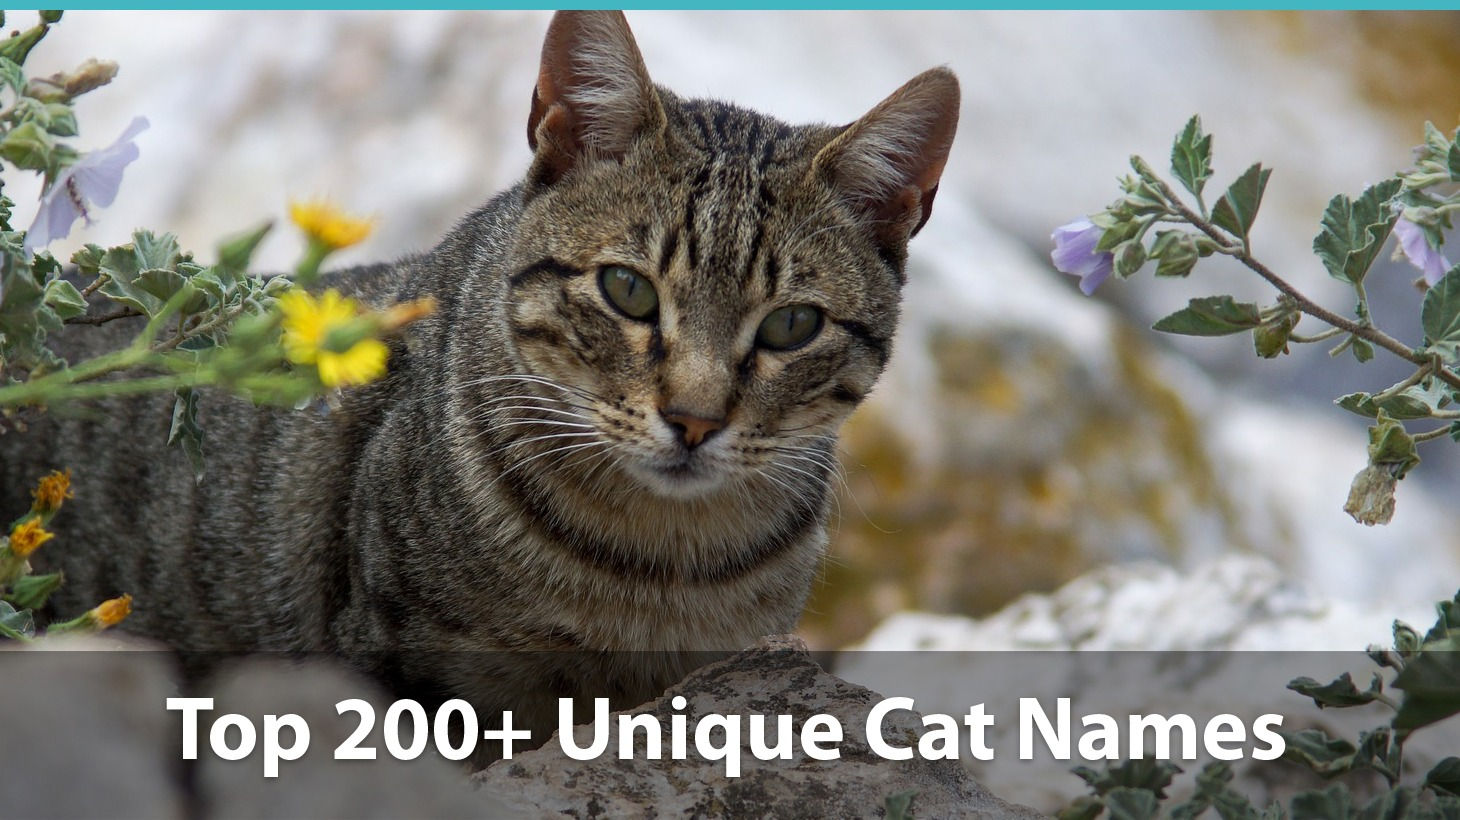 Top 200+ Unique Cat Names: Puns, Funny Options, And More!